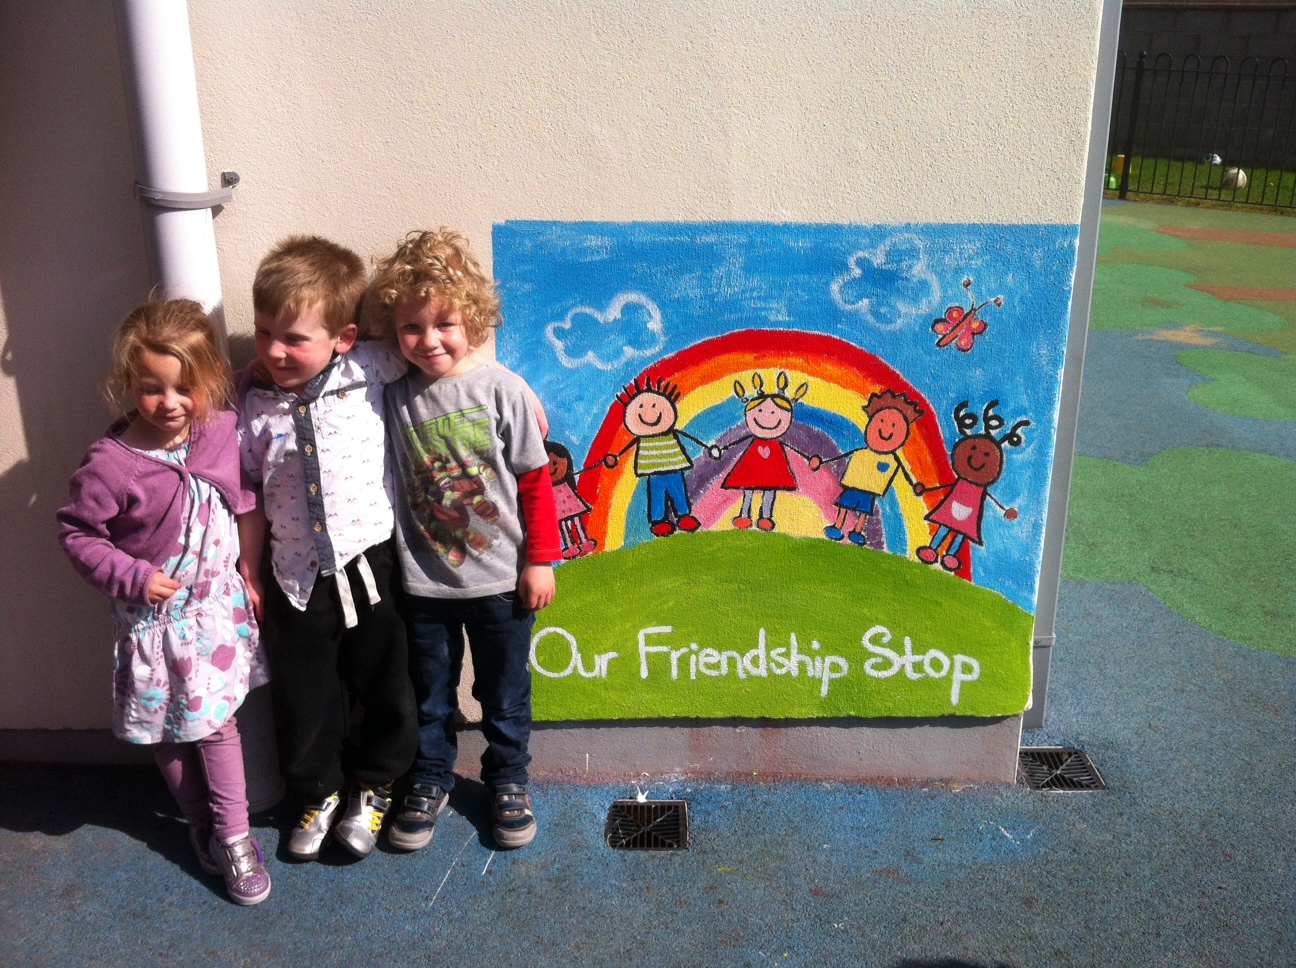 A Friendship Stop at Crawford